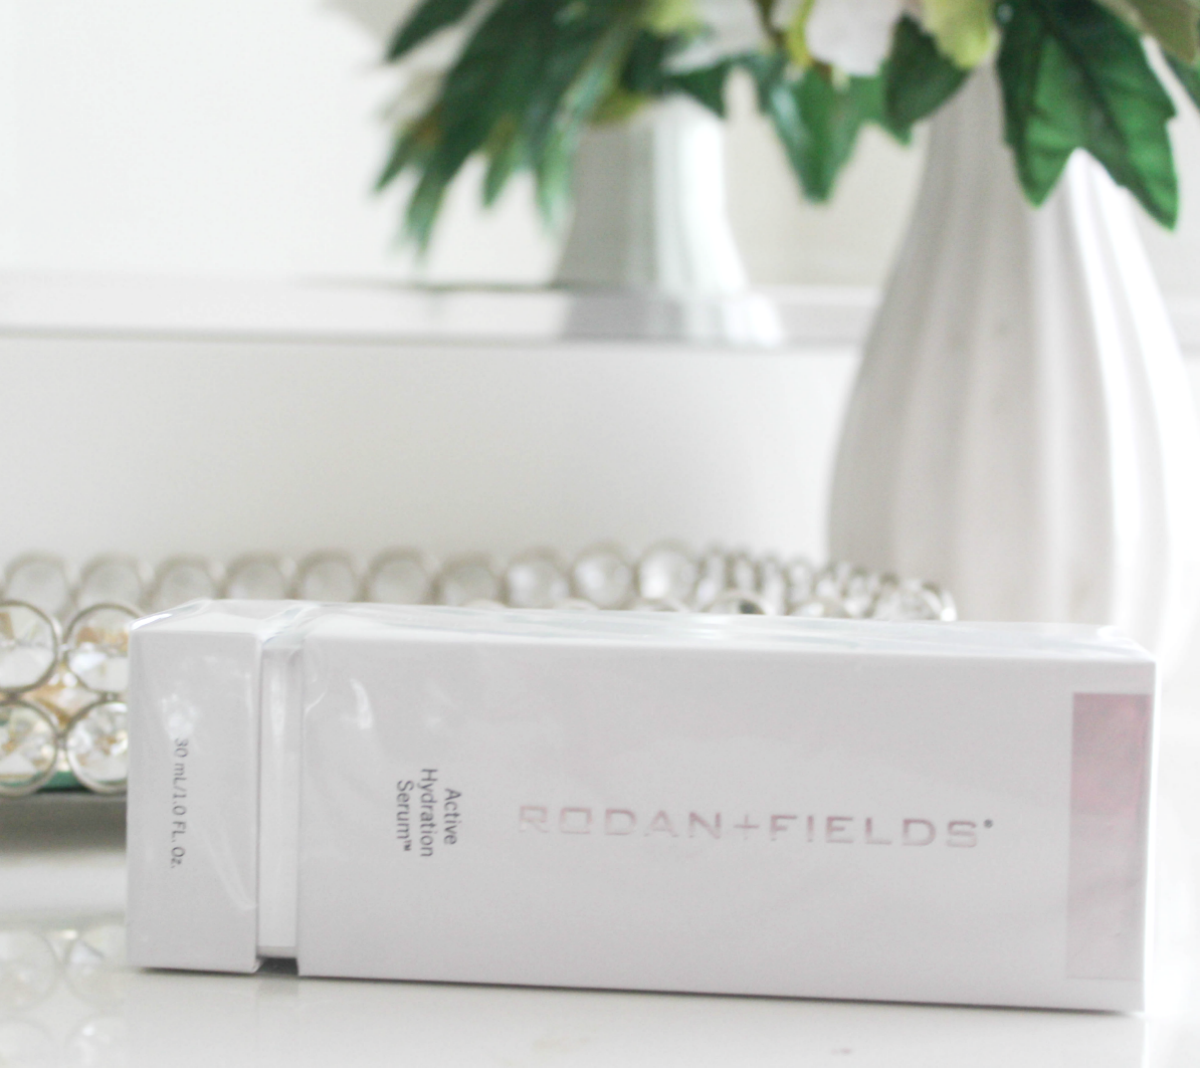 Rodan + Fields Skincare - New Facial Skincare – At Home With